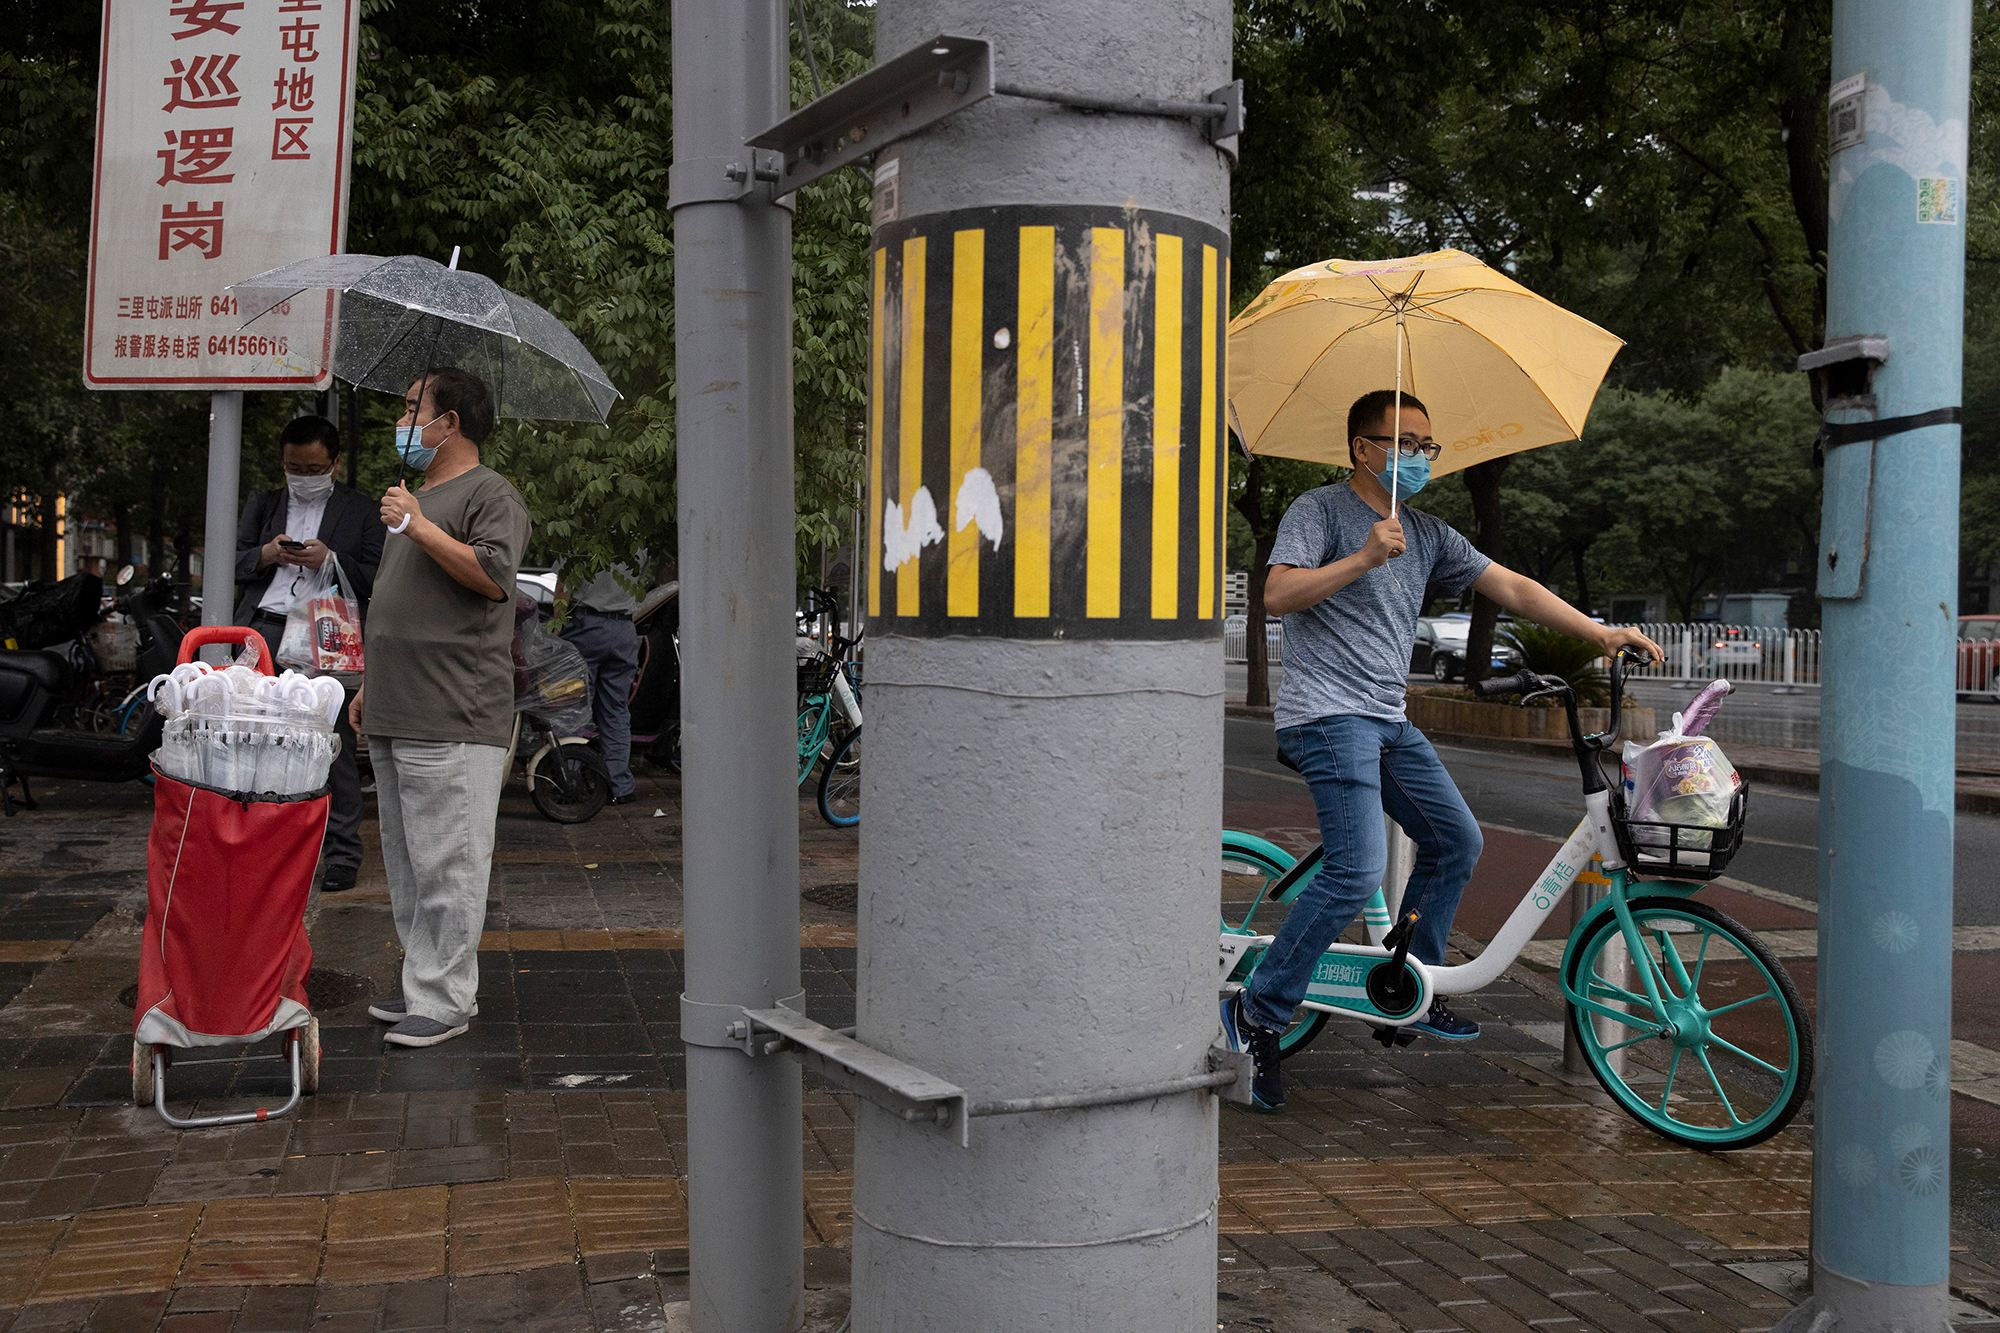 A man wearing a face mask to curb the spread of the coronavirus takes the opportunity to sell umbrellas as it rains in Beijing on Thursday, June 18, 2020.